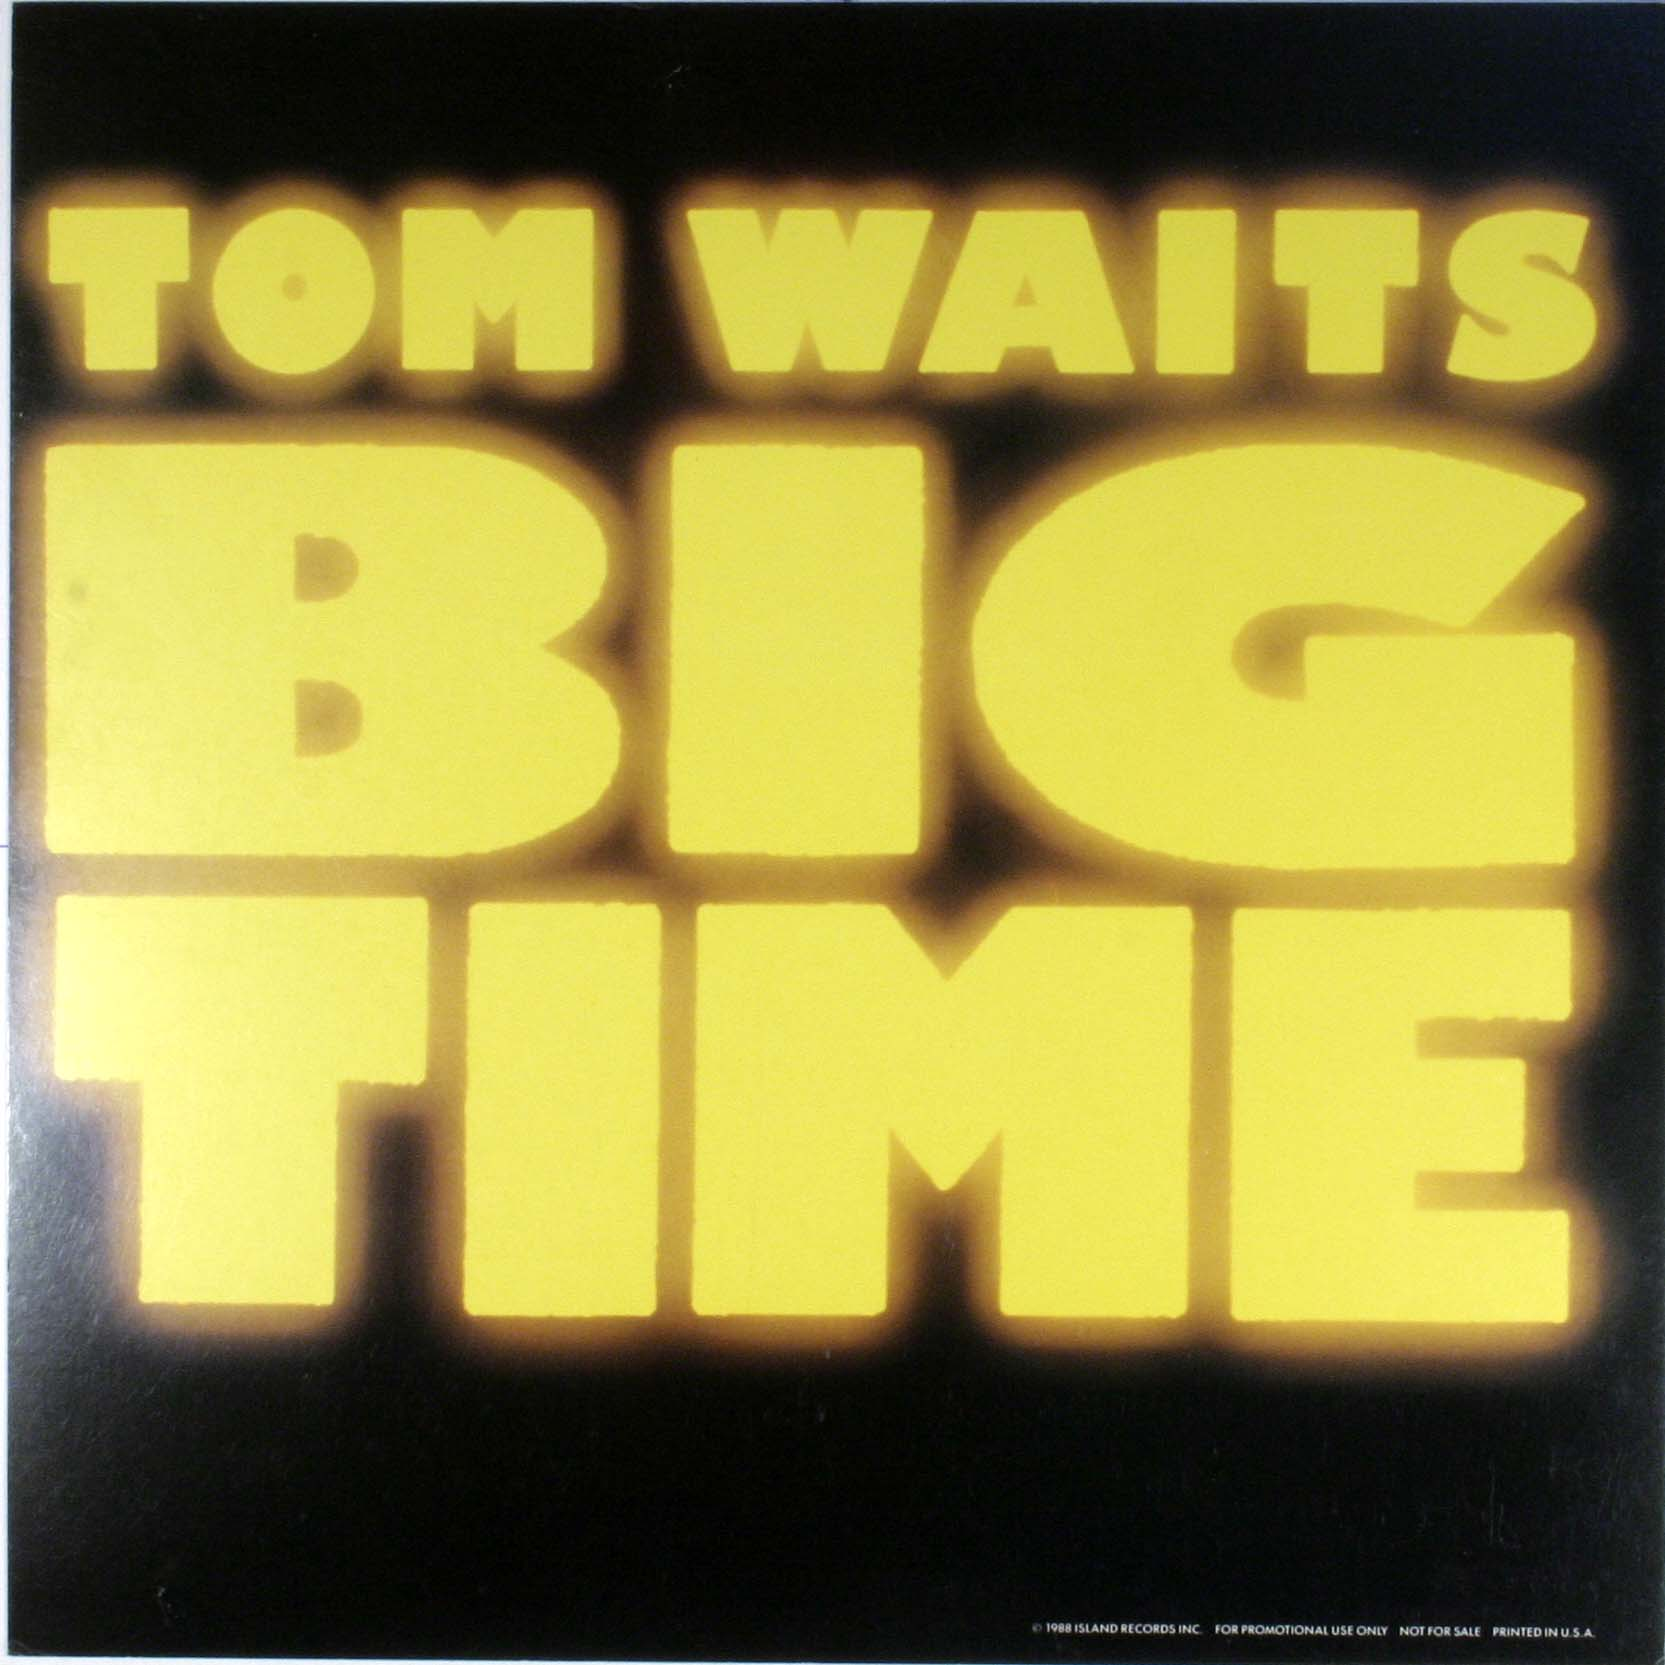 Tom Waits - Big Time Vinyl